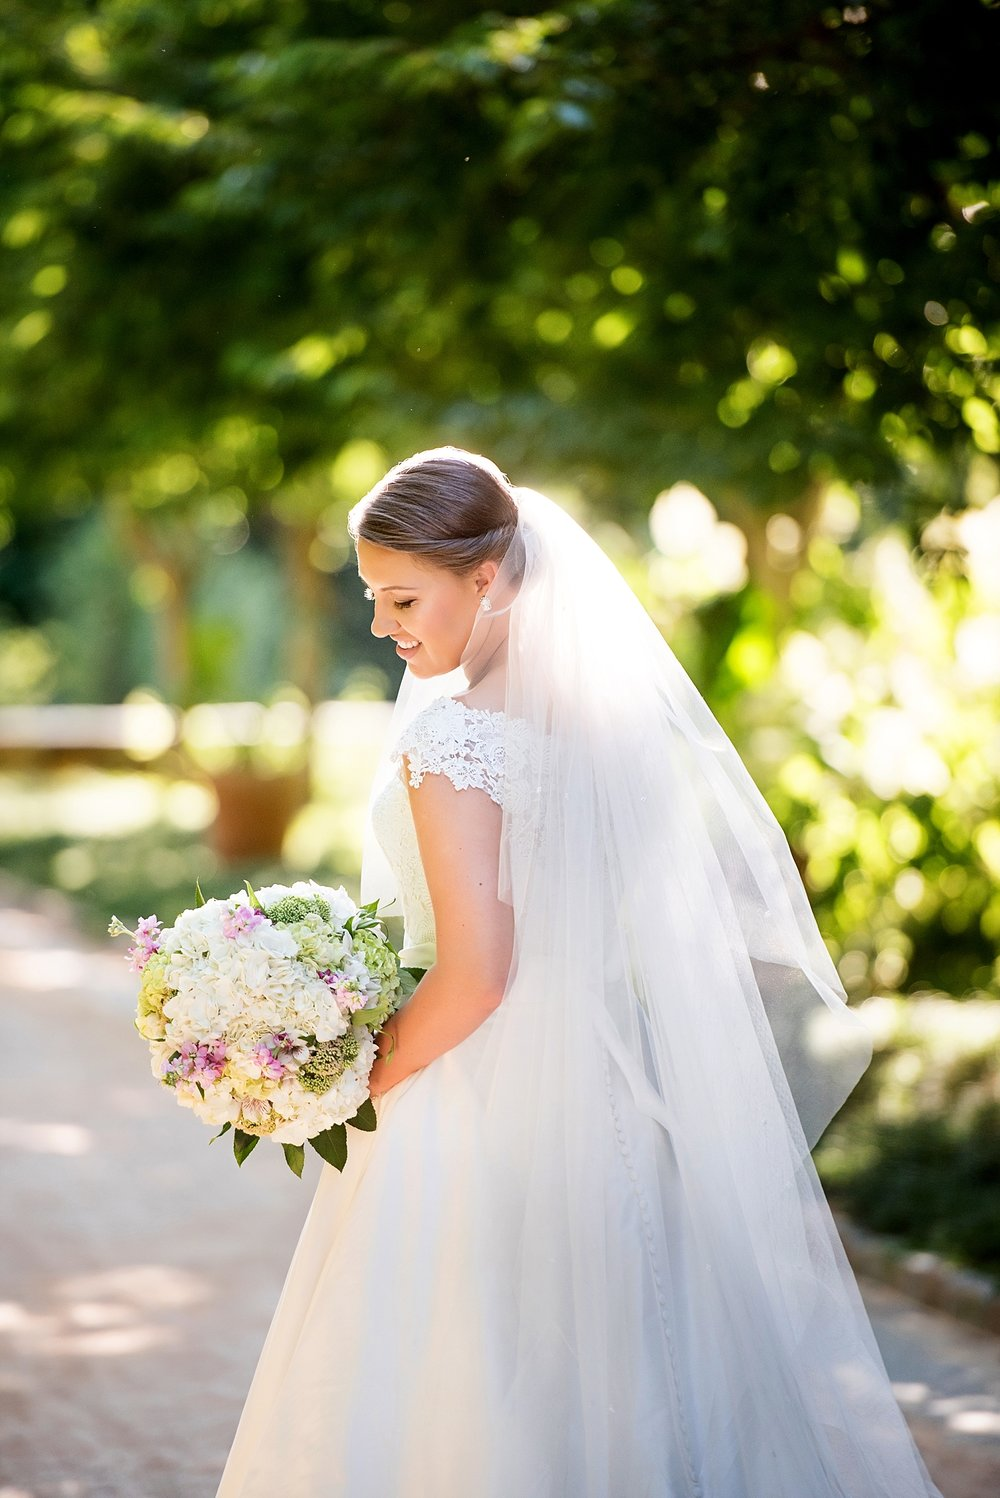 duke_gardens_bridal_portrait_0248.jpg